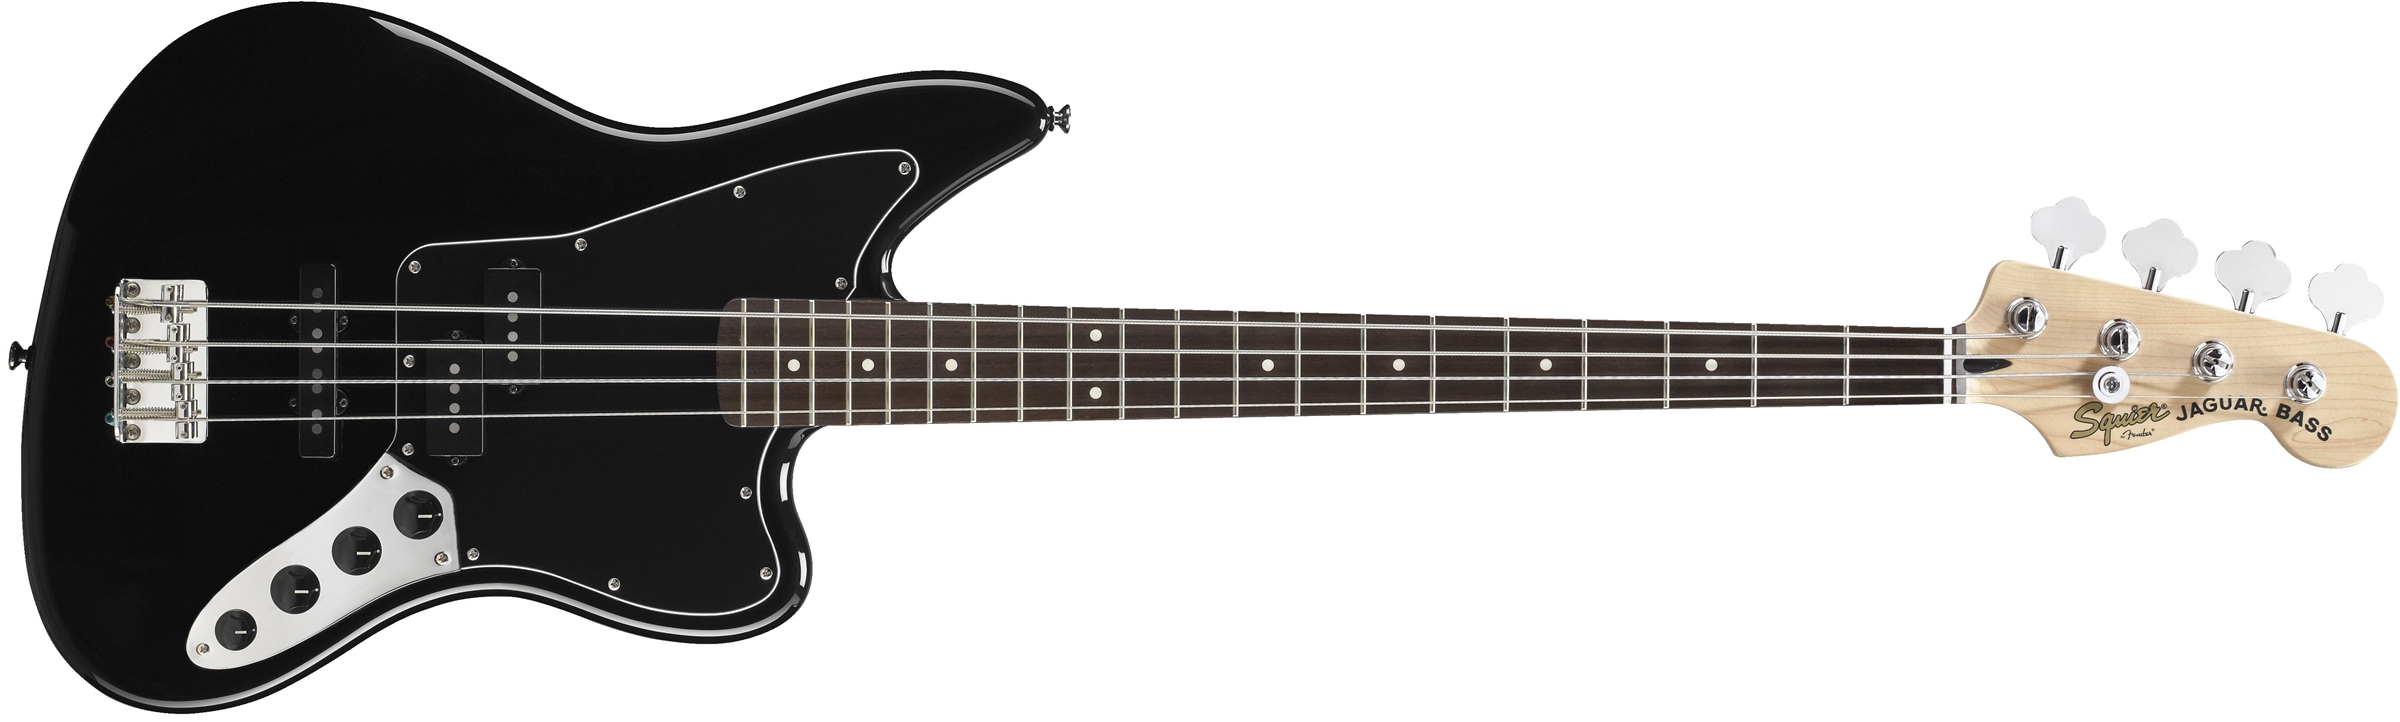 squier vintage modified jaguar bass special rosewood fingerboard. Cars Review. Best American Auto & Cars Review